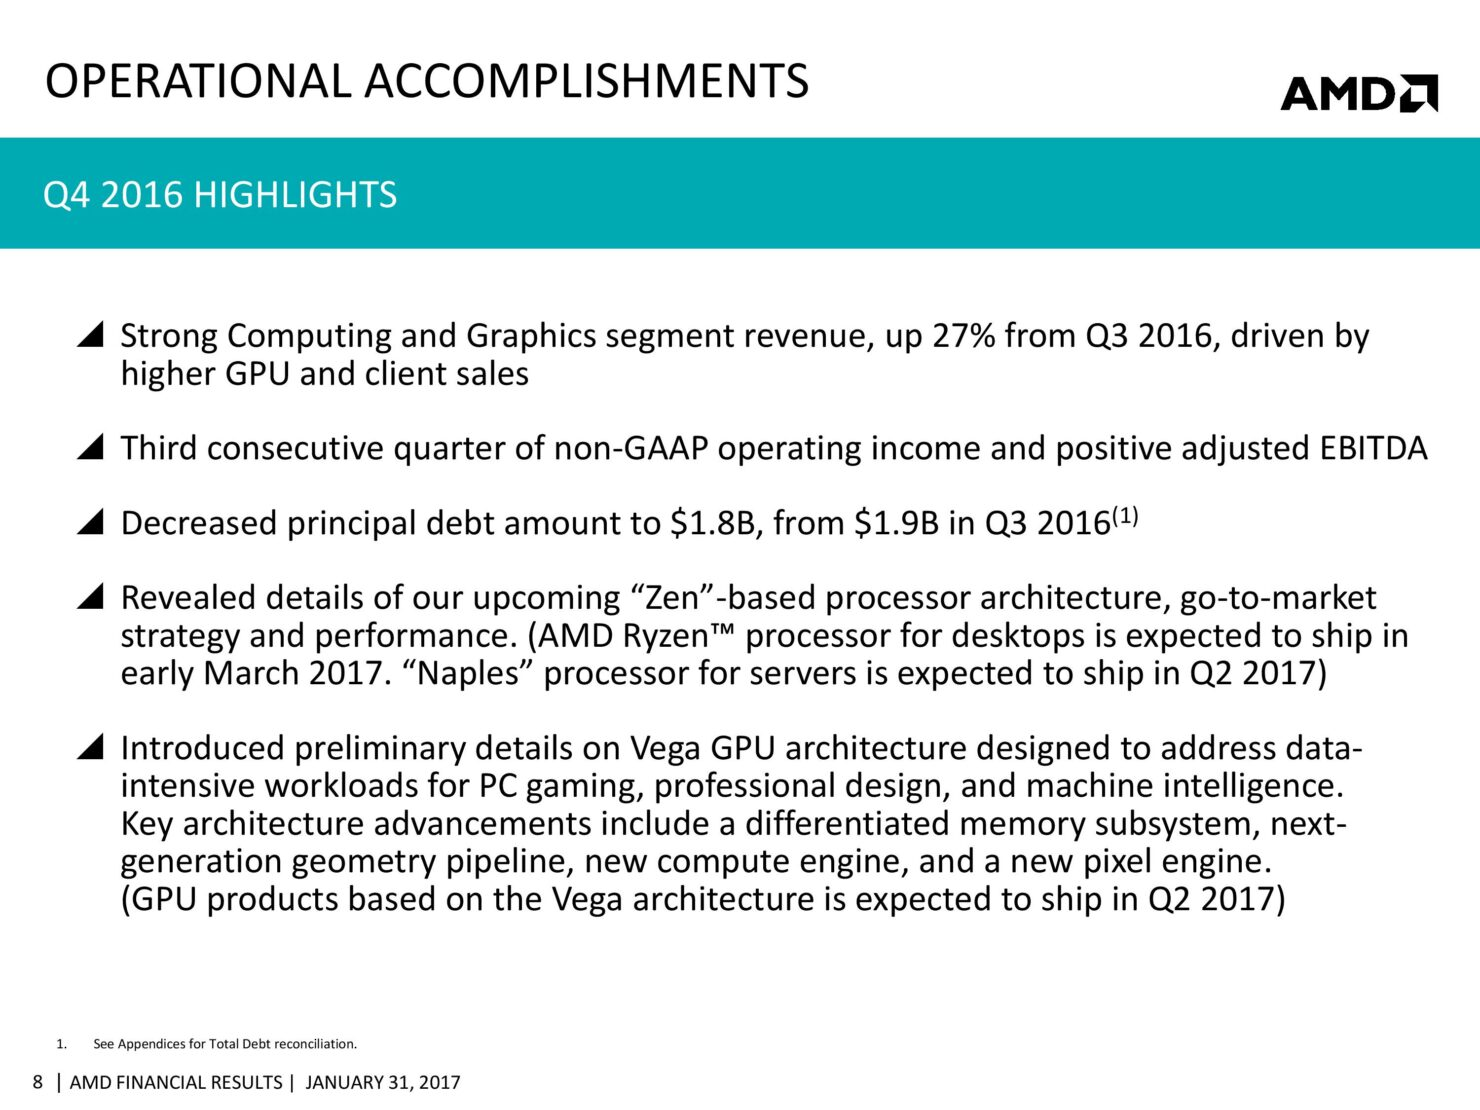 amd-cfo-commentary-slides-q4-16-page-008